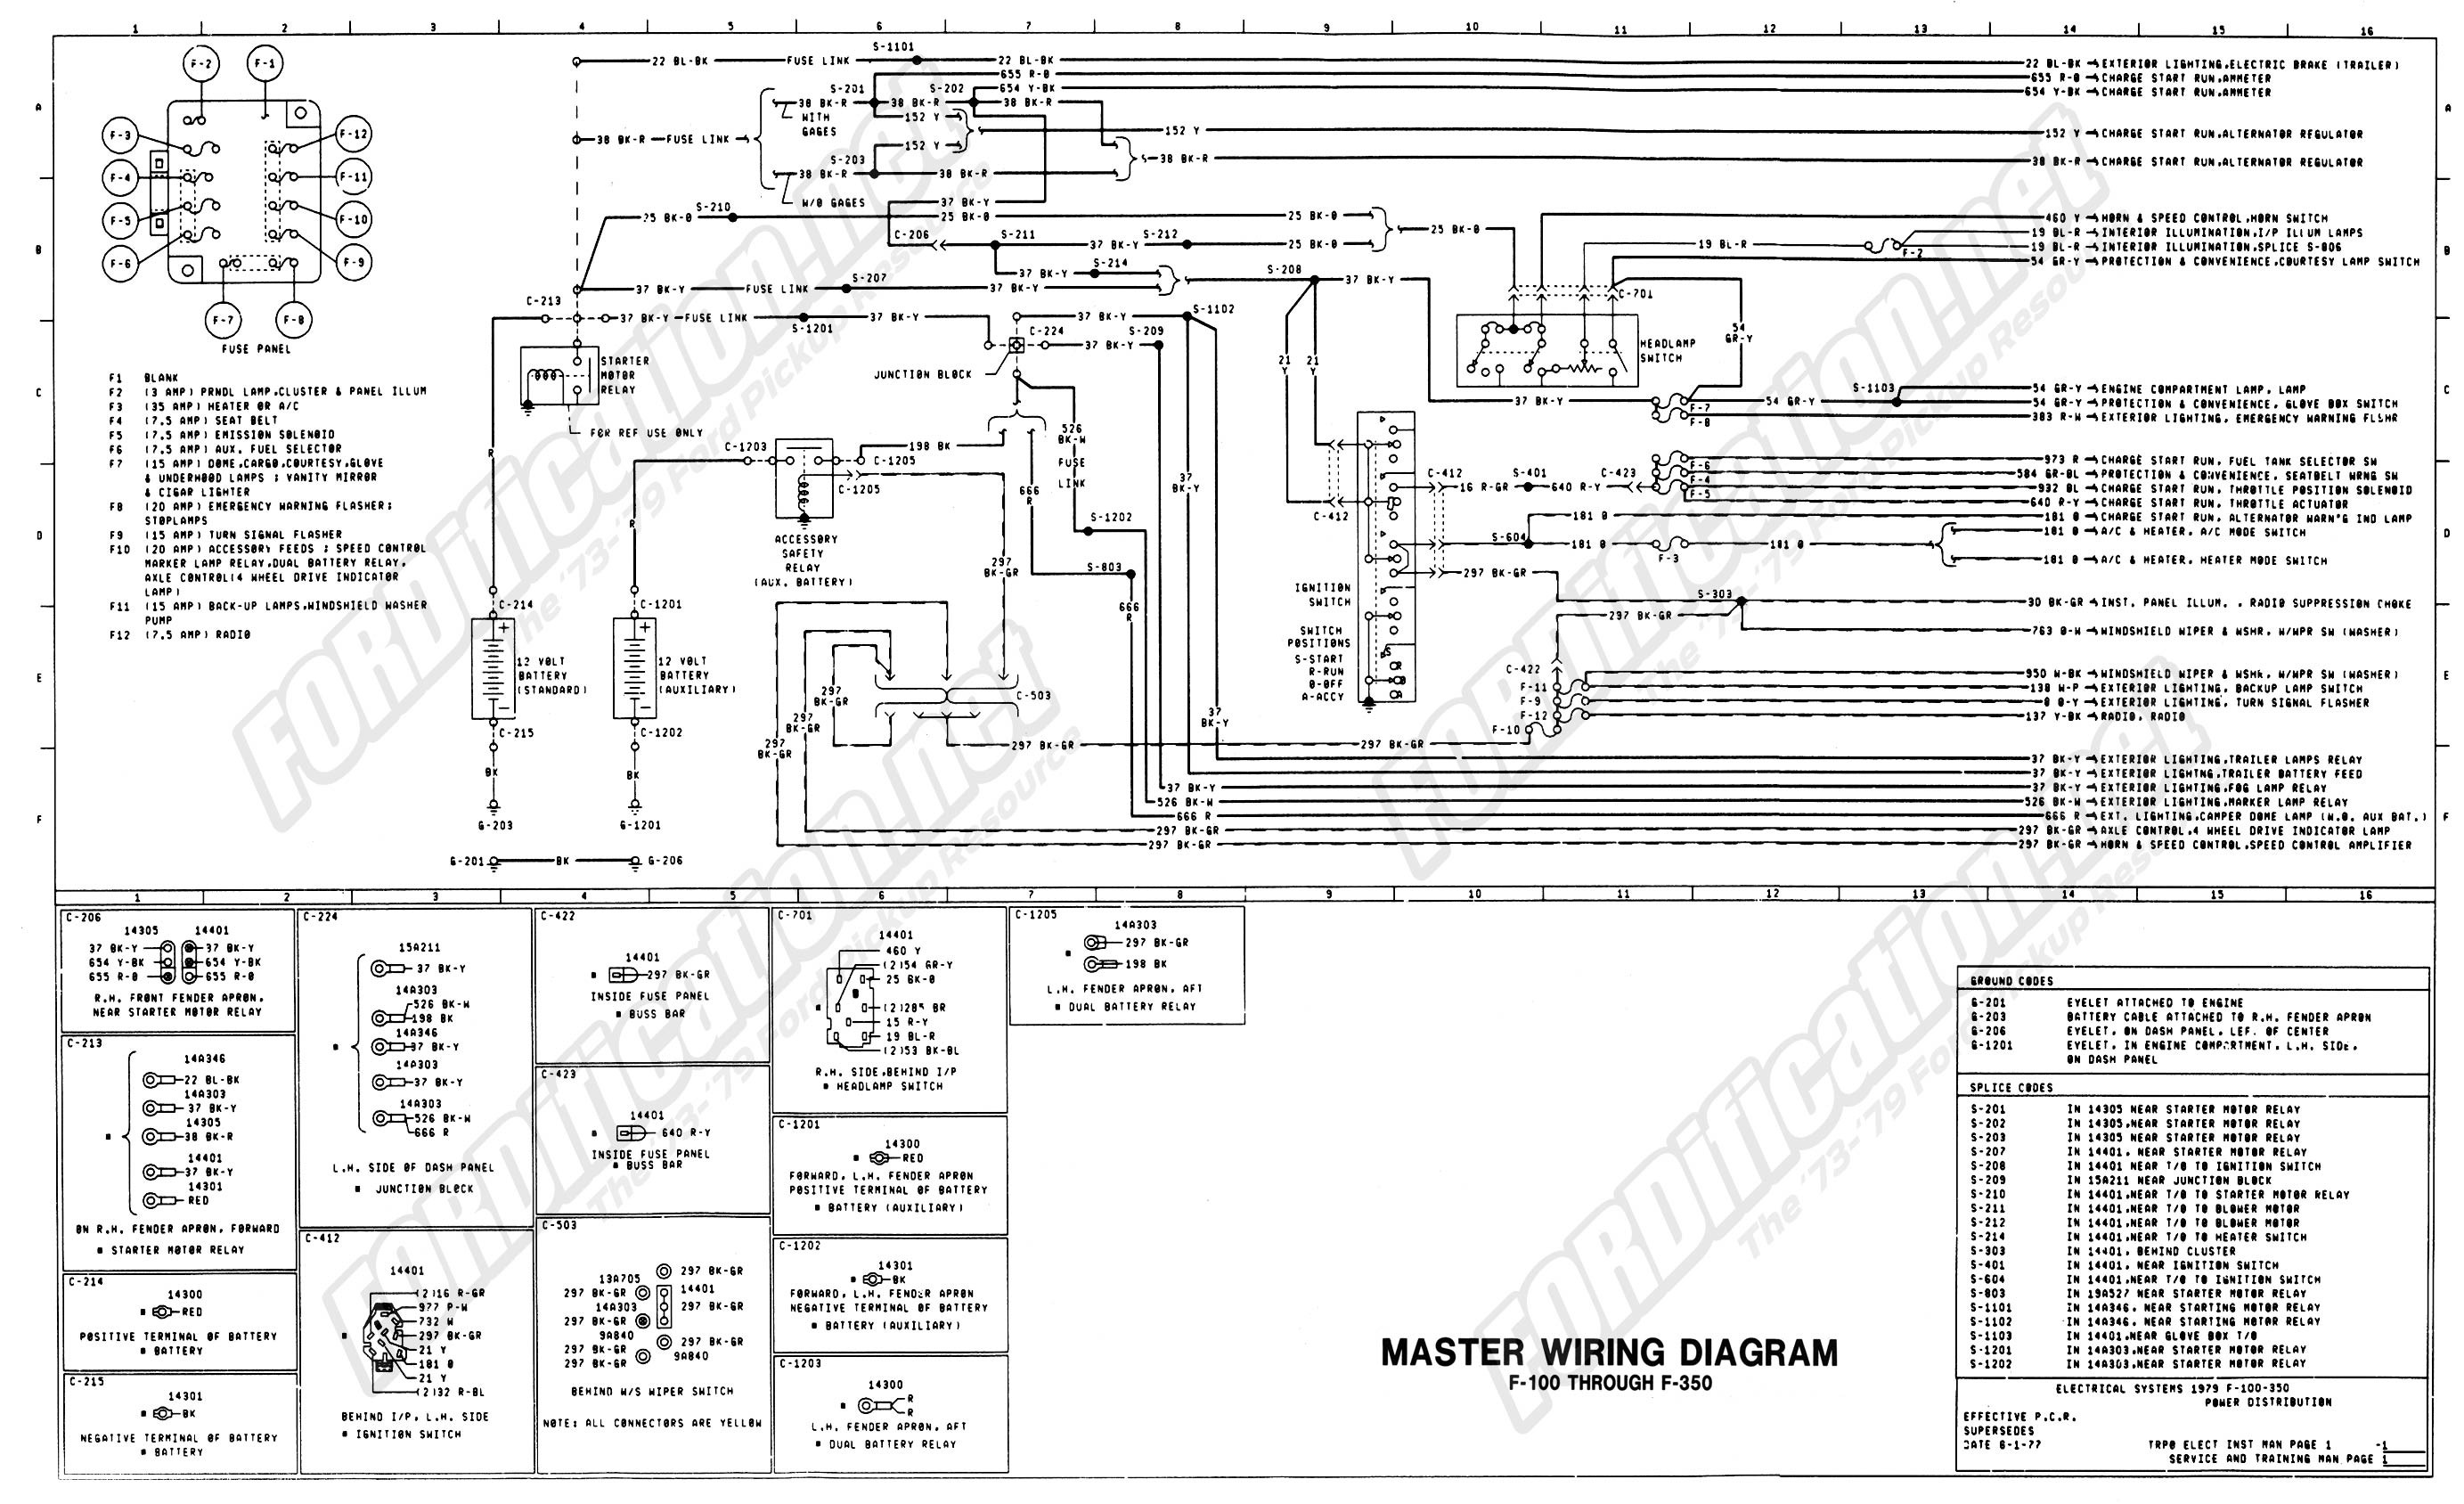 wiring 79master 1of9. 1973 1979 Ford Truck Wiring Diagrams & Schematics  FORDification from ford ignition control module ...